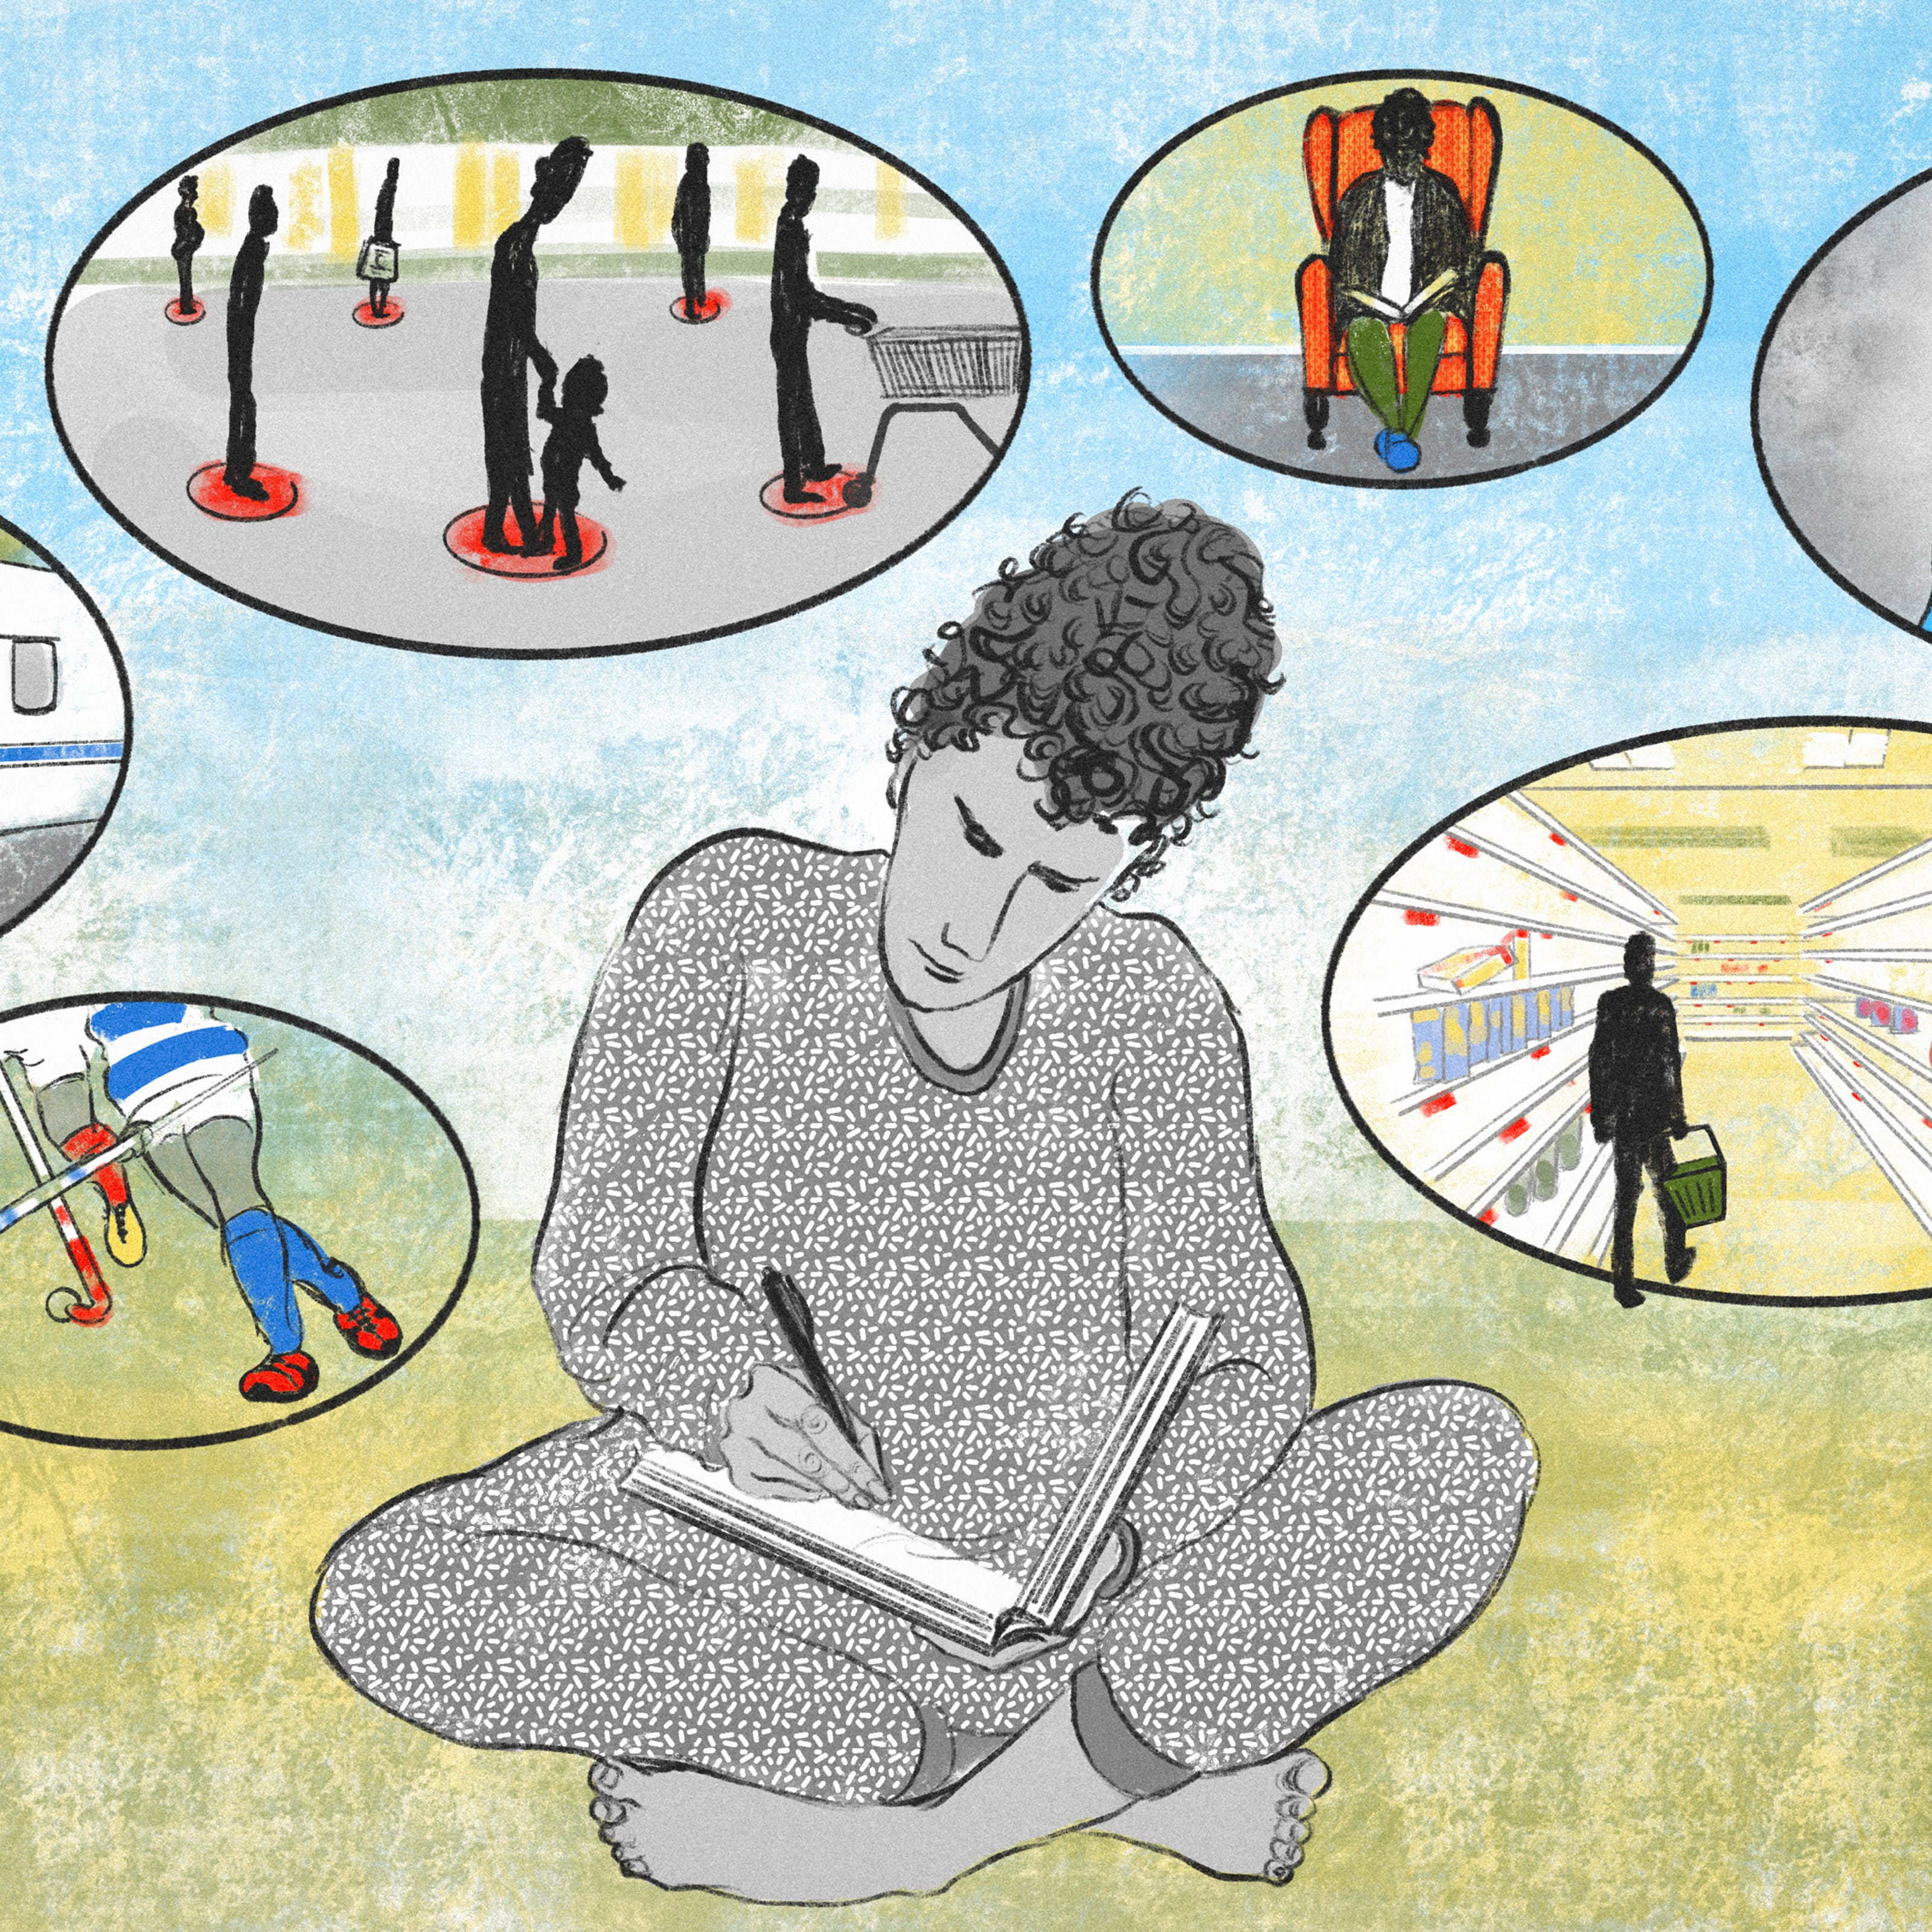 A digital illustration of three people writing in their journals in isolation. Surrounding them are the thought bubbles of the writers, each depicting topics and experiences relating to living in lockdown. The bubbles contain a NHS worker in full PPE, empty supermarket shelves, queuing at markers on the street to denote social distance and people living in isolation.